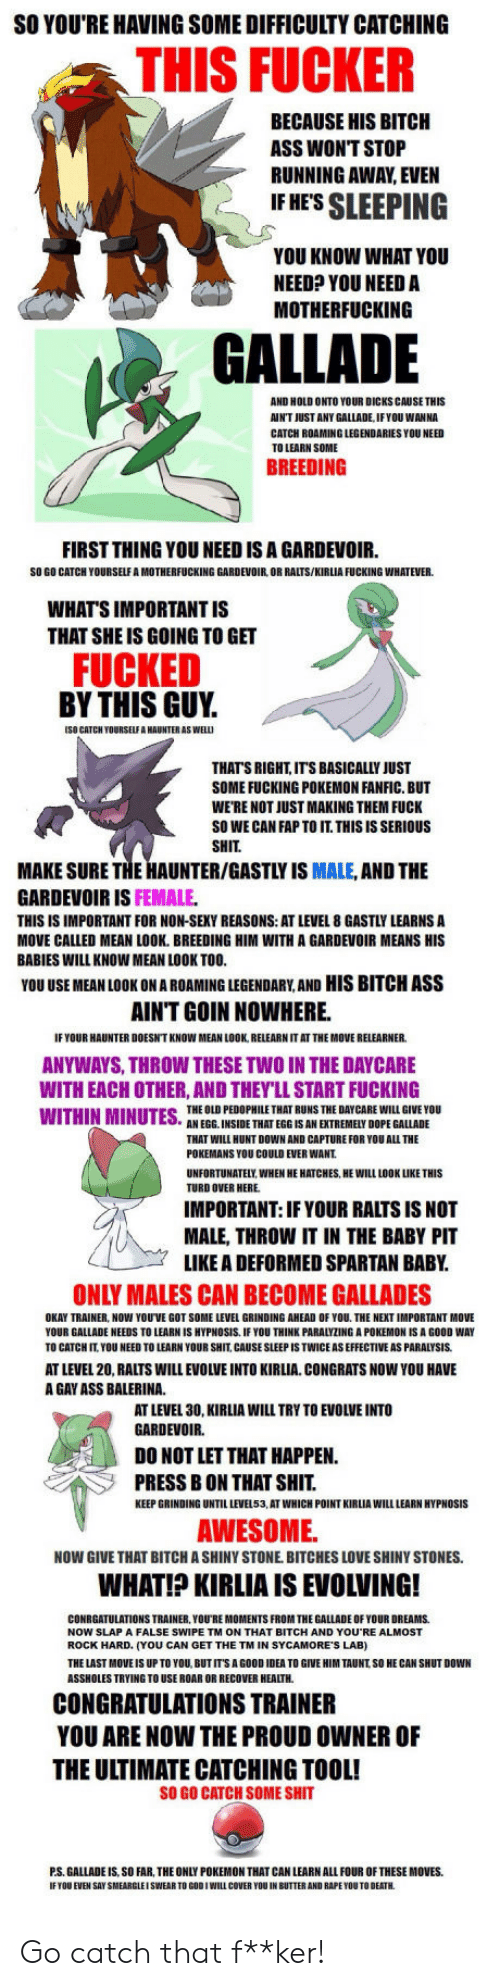 Rock Hard: SO YOU'RE HAVING SOME DIFFICULTY CATCHING  THIS FUCKER  BECAUSE HIS BITCH  ASS WONT STOP  RUNNING AWAY EVEN  IF HES SLEEPING  YOU KNOW WHAT YOU  NEED? YOU NEED A  MOTHERFUCKING  GALLADE  AND HOLD ONTO YOUR DICKS CAUSE THIS  AIN'T JUST ANY GALLADE, IFYOU WANNA  CATCH ROAMING LEGENDARIES YOU NEED  TO LEARN SOME  BREEDING  FIRST THING YOU NEED IS A GARDEVOIR.  SO GO CATCH YOURSELF A MOTHERFUCKING GARDEVOIR, OR RALTS/KIRLIA FUCKING WHATEVER  WHAT'S IMPORTANT IS  THAT SHE IS GOING TO GET  FUCKED  BY THIS GUY.  (SO CATCH YOURSELF A HAUNTER AS WEL  THATS RIGHT, ITS BASICALLY JUST  SOME FUCKING POKEMON FANFIC. BUT  WE'RE NOT JUST MAKING THEM FUCK  SO WE CAN FAP TO IT. THISISSERIOUS  SHIT  MAKE SURE THE HAUNTER/GASTLY IS MALE, AND THE  GARDEVOIR IS FEMALE  THIS IS IMPORTANT FOR NON-SEKY REASONS: AT LEVEL 8 GASTLY LEARNS A  MOVE CALLED MEAN LOOK. BREEDING HIM WITH A GARDEVOIR MEANS HIS  BABIES WILL KNOW MEAN LOOK TOO  YOU USE MEAN LOOK ON A ROAMING LEGENDARY,AND HIS BITCH ASS  AINT GOIN NOWHERE.  IF YOUR HAUNTER DOESN'T KNOW MEAN LOOK, RELEARN IT AT THE MOVE RELEARNER  ANYWAYS, THROW THESE TWO IN THE DAYCARE  WITH EACH OTHER, AND THEY'LL START FUCKING  THE OLD PEDOPHILE THAT RUNS THE DAY CARE WILL GIVE YOU  AN EGG. INSIDE THAT EGG IS AN EXTREMELY DOPE GALLADE  THAT WILL HUNT DOWN AND CAPTURE FOR YOU ALL THE  POKEMANS YOU COULD EVER WANT  UNFORTUNATELY WHEN HE HATCHES, HE WILL LOOK LIKE THIS  TURD OVER HERE  IMPORTANT: IF YOUR RALTS IS NOT  MALE, THROW IT IN THE BABY PIT  LIKE A DEFORMED SPARTAN BABY  ONLY MALES CAN BECOME GALLADES  OKAY TRAINER, NOW YOUVE GOT SOME LEVEL GRINDING AHEAD OF YOU THE NEXT IMPORTANT MOVE  YOUR GALLADE NEEDS TO LEARN IS HYPNOSIS IF YOU THINK PARALYZING A POKEMON IS A GOOD WAY  TO CATCH IT. YOU NEED TO LEARN YOUR SHIT, CAUSE SLEEP IS TWICE AS EFFECTIVE AS PARALYSIS  AT LEVEL 20, RALTS WILL EVOLVE INTO KIRLIA CONGRATS NOW YOU HAVE  A GAY ASS BALERINA  AT LEVEL 30, KIRLIA WILL TRY TO EVOLVE INTO  GARDEVOIR.  DO NOT LET THAT HAPPEN  PRESS B O